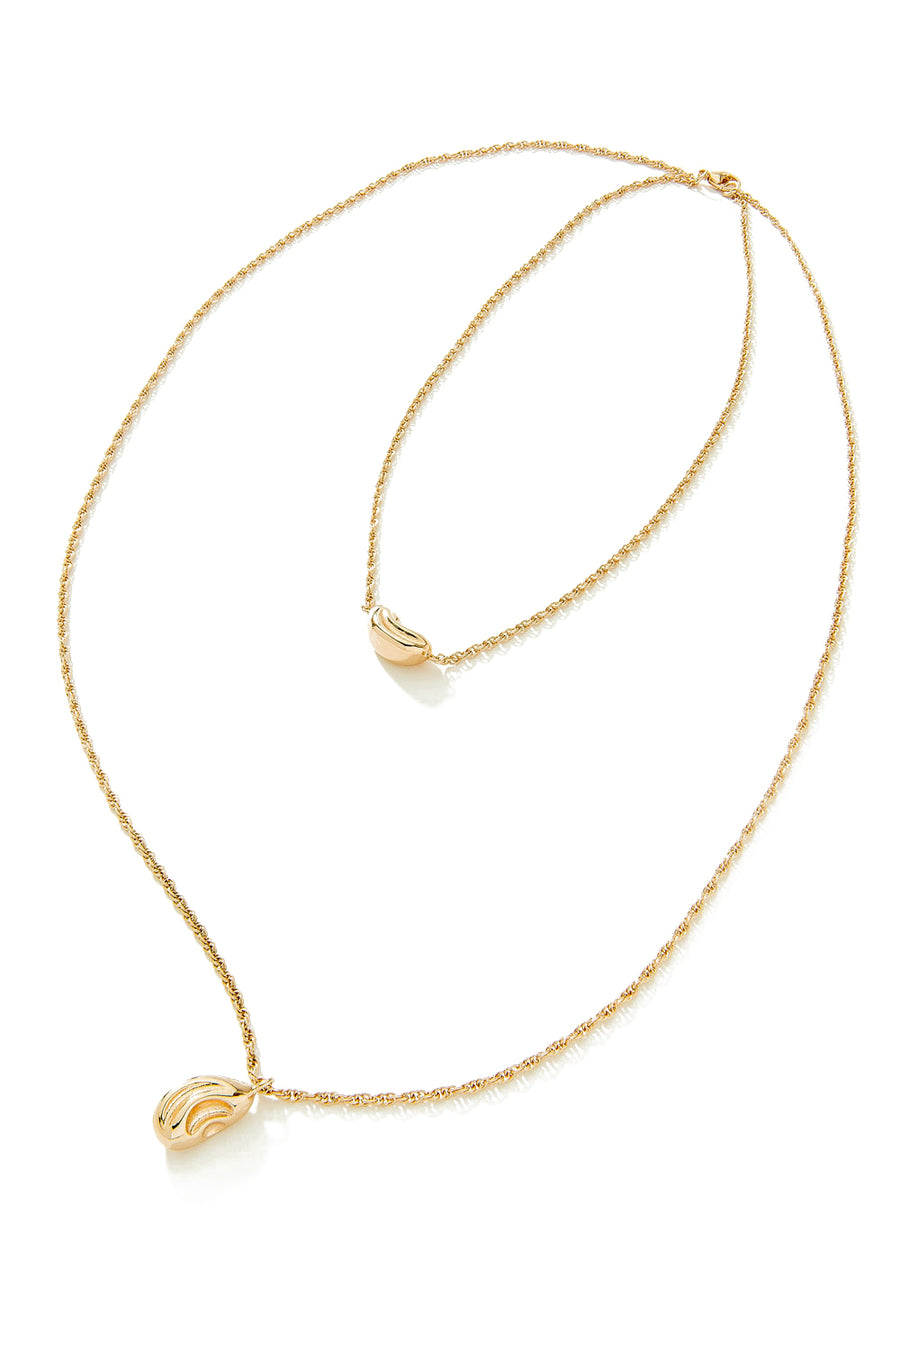 Kai Shell Necklace - 14K Gold